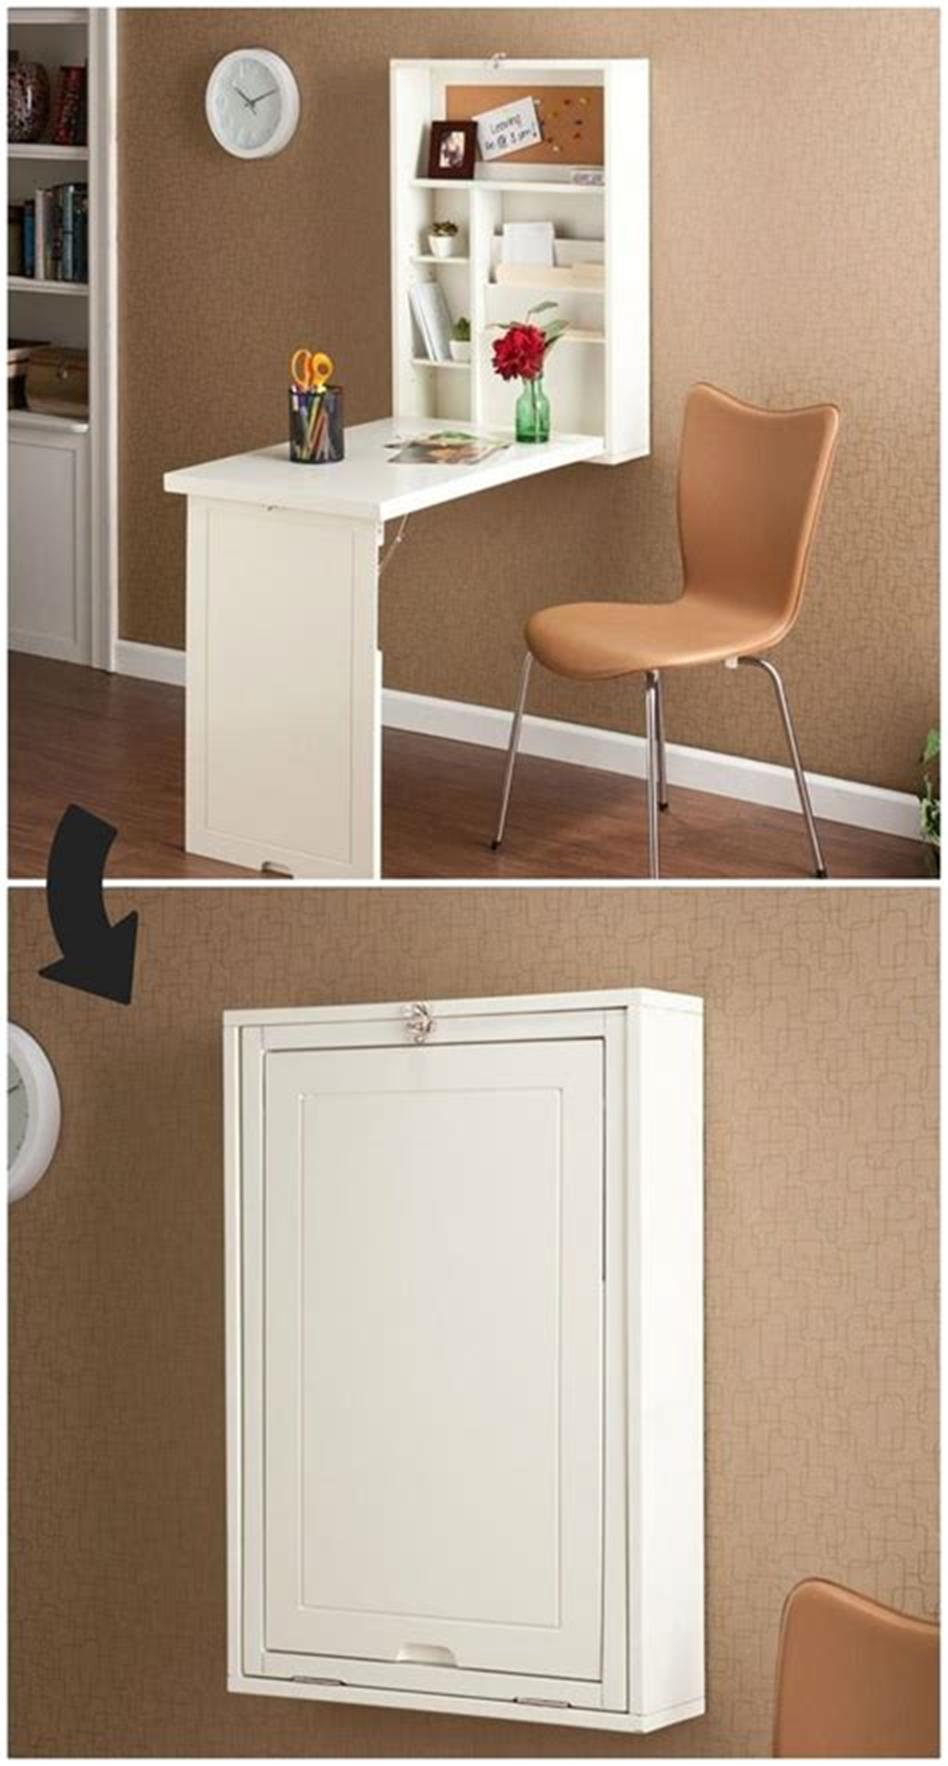 50 Amazing Ideas Furniture for Small Spaces Youll Love 9